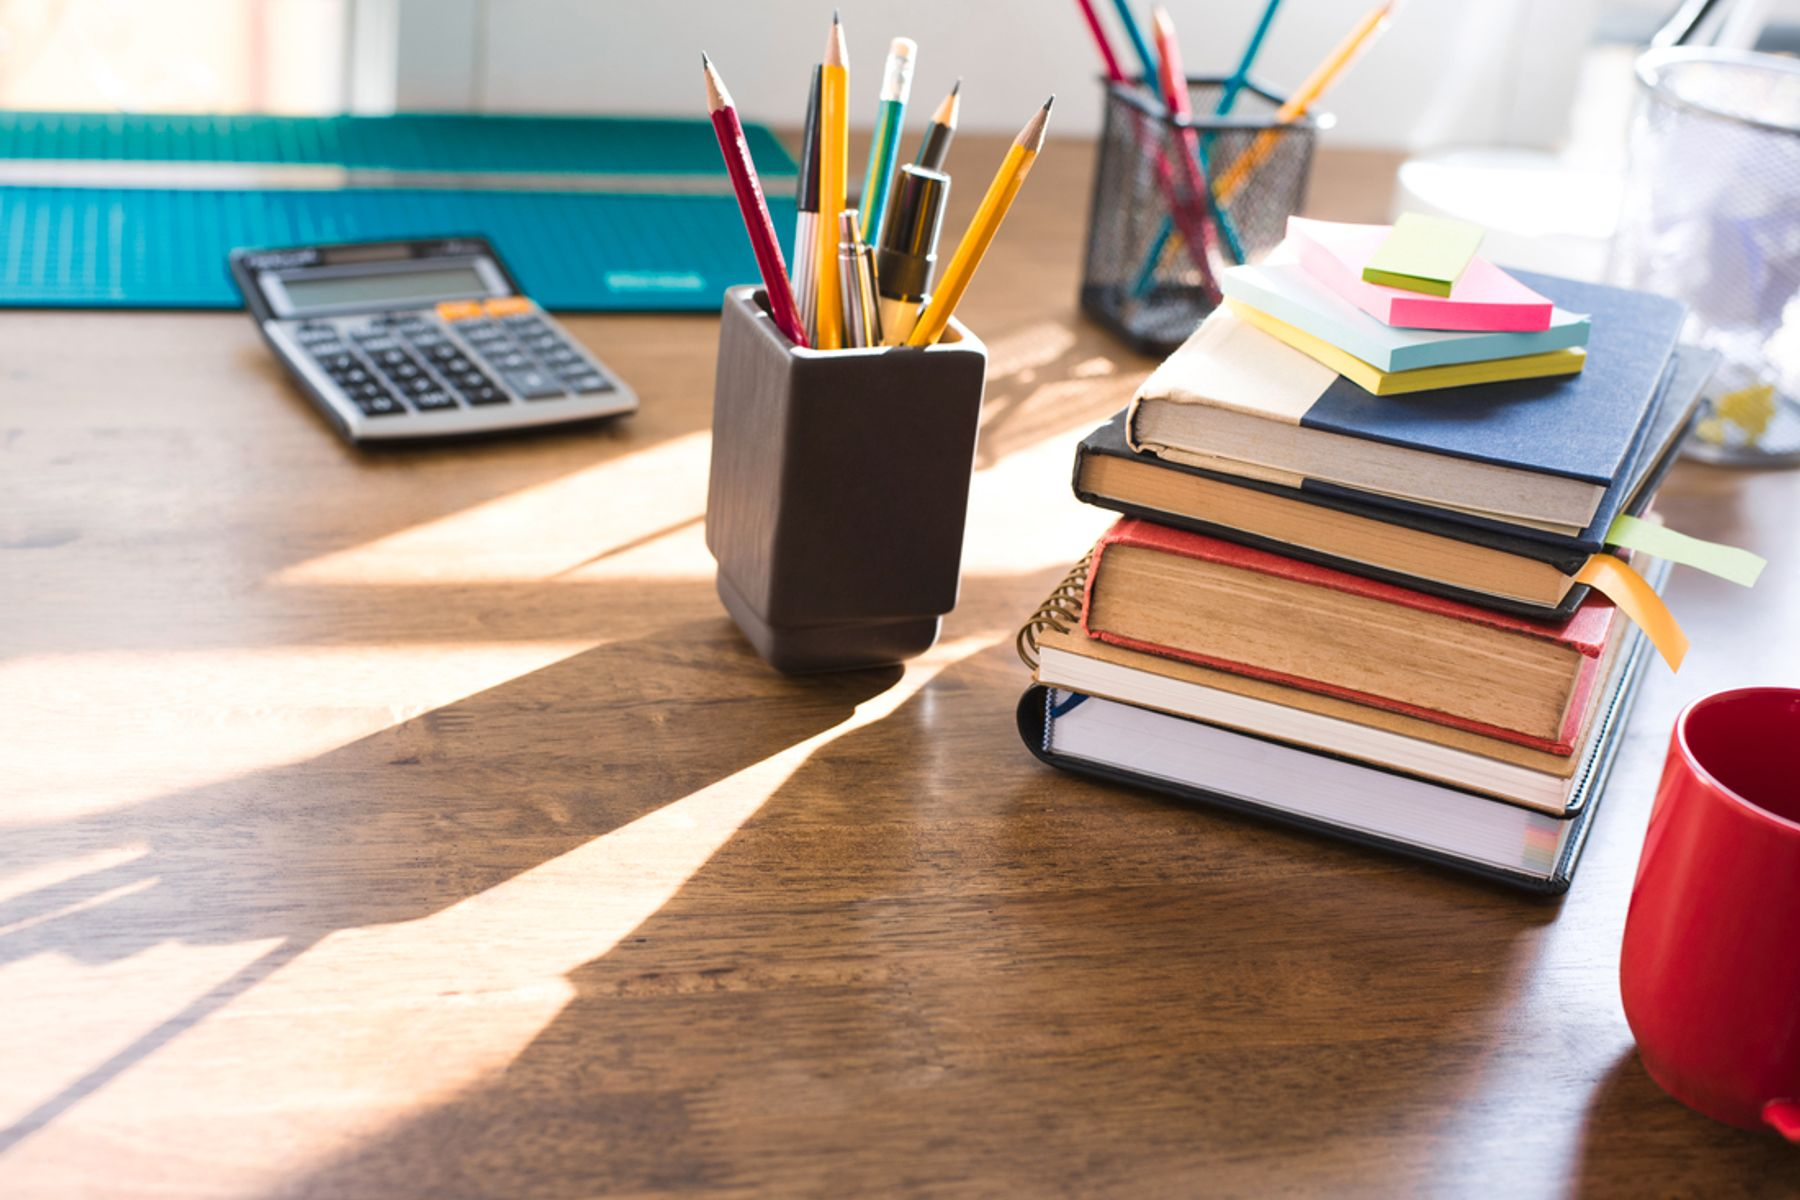 Image of a desk with books and office supplies